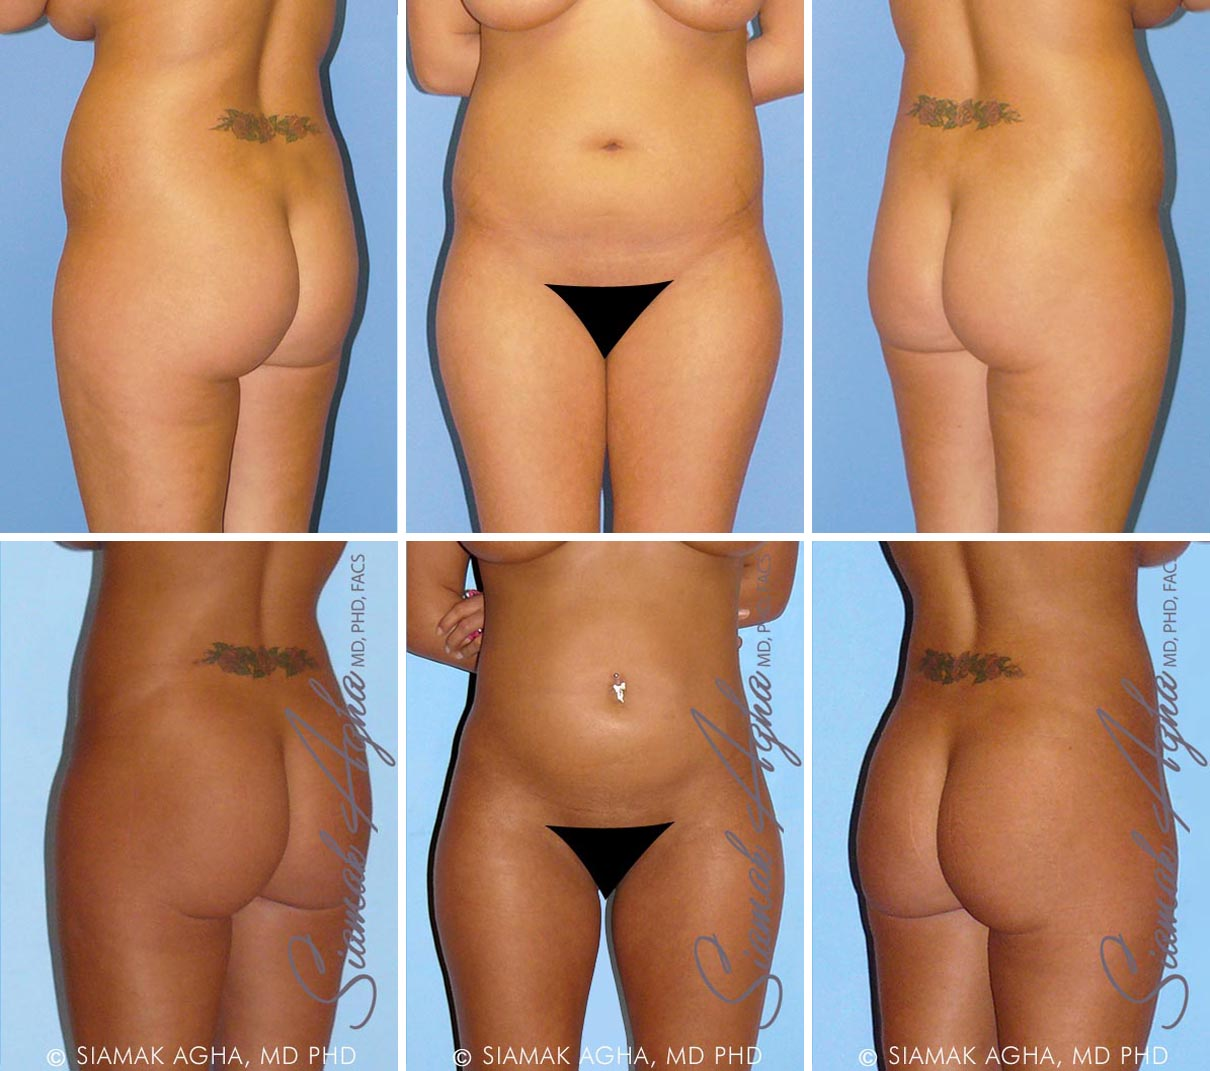 Liposuction Before and After Set 2